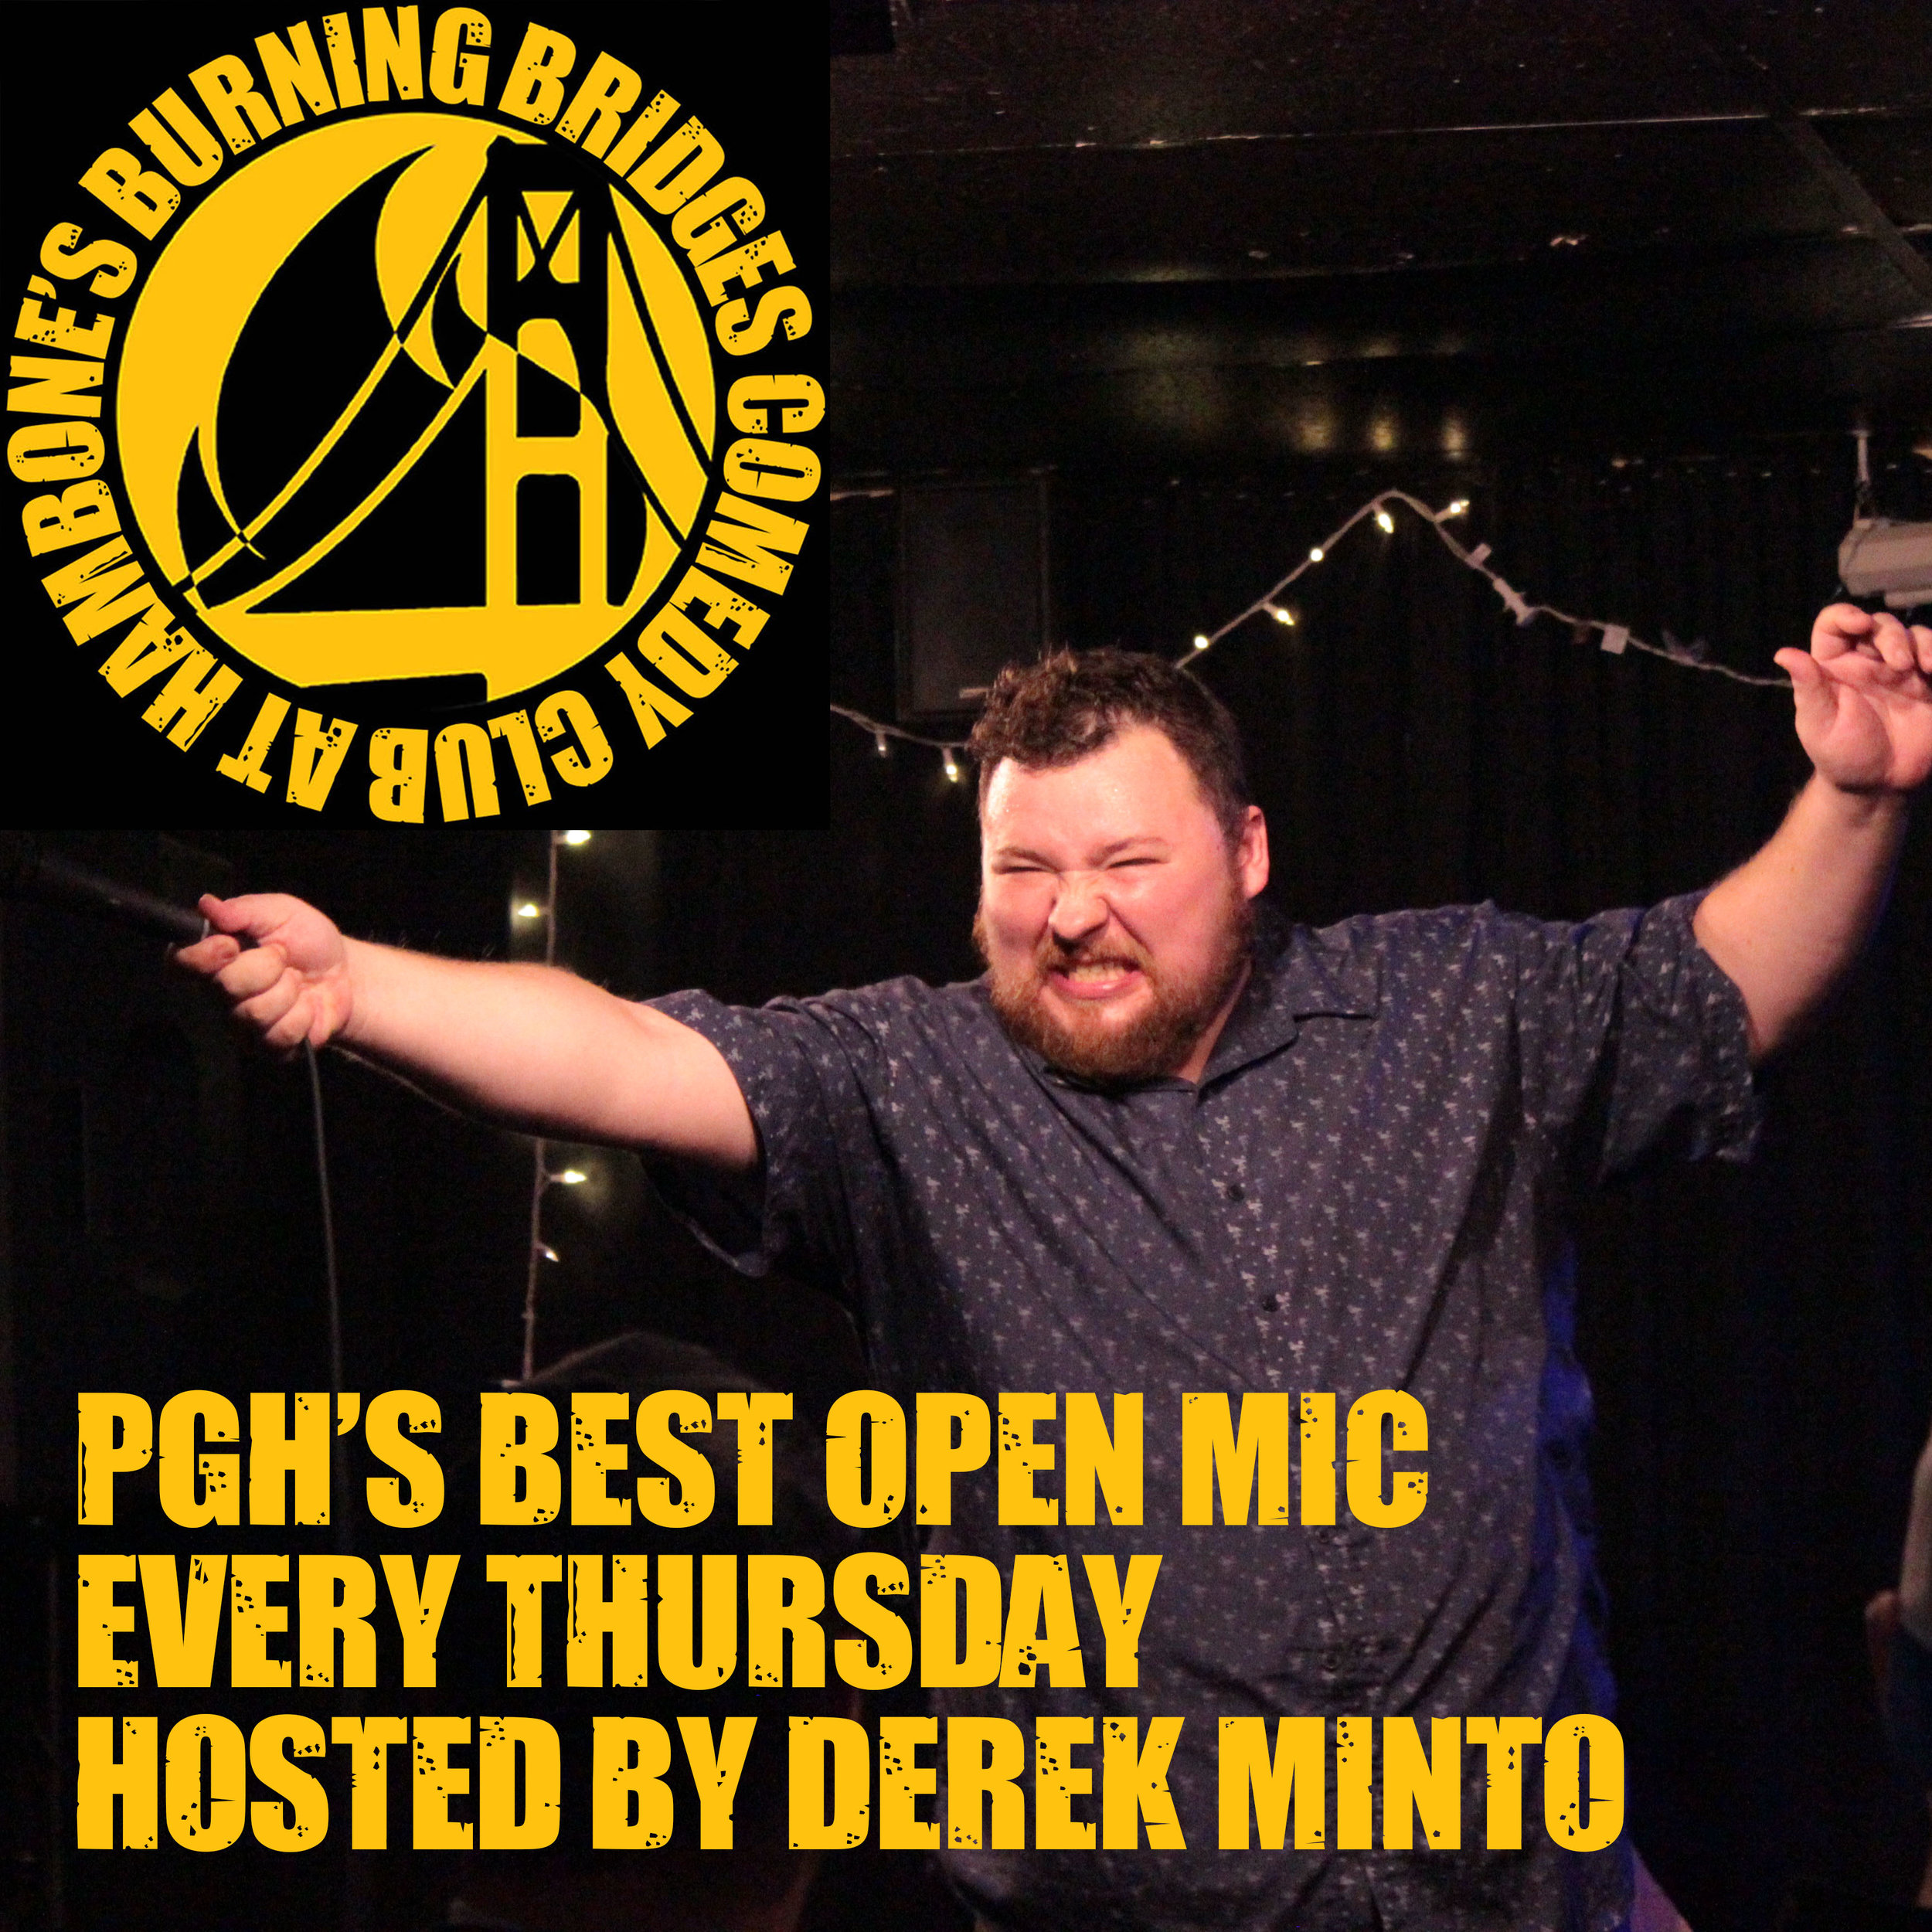 PGH's Best Open Mic hosted by Derek Minto - This might be the best open mic in the state. Stage time will vary depending on the number of comics. Typically 3-5 minutes.Sign up in person starting at 8:30pm or message Derek Minto via Facebook.Show Starts 9:30pmFREE SHOW!